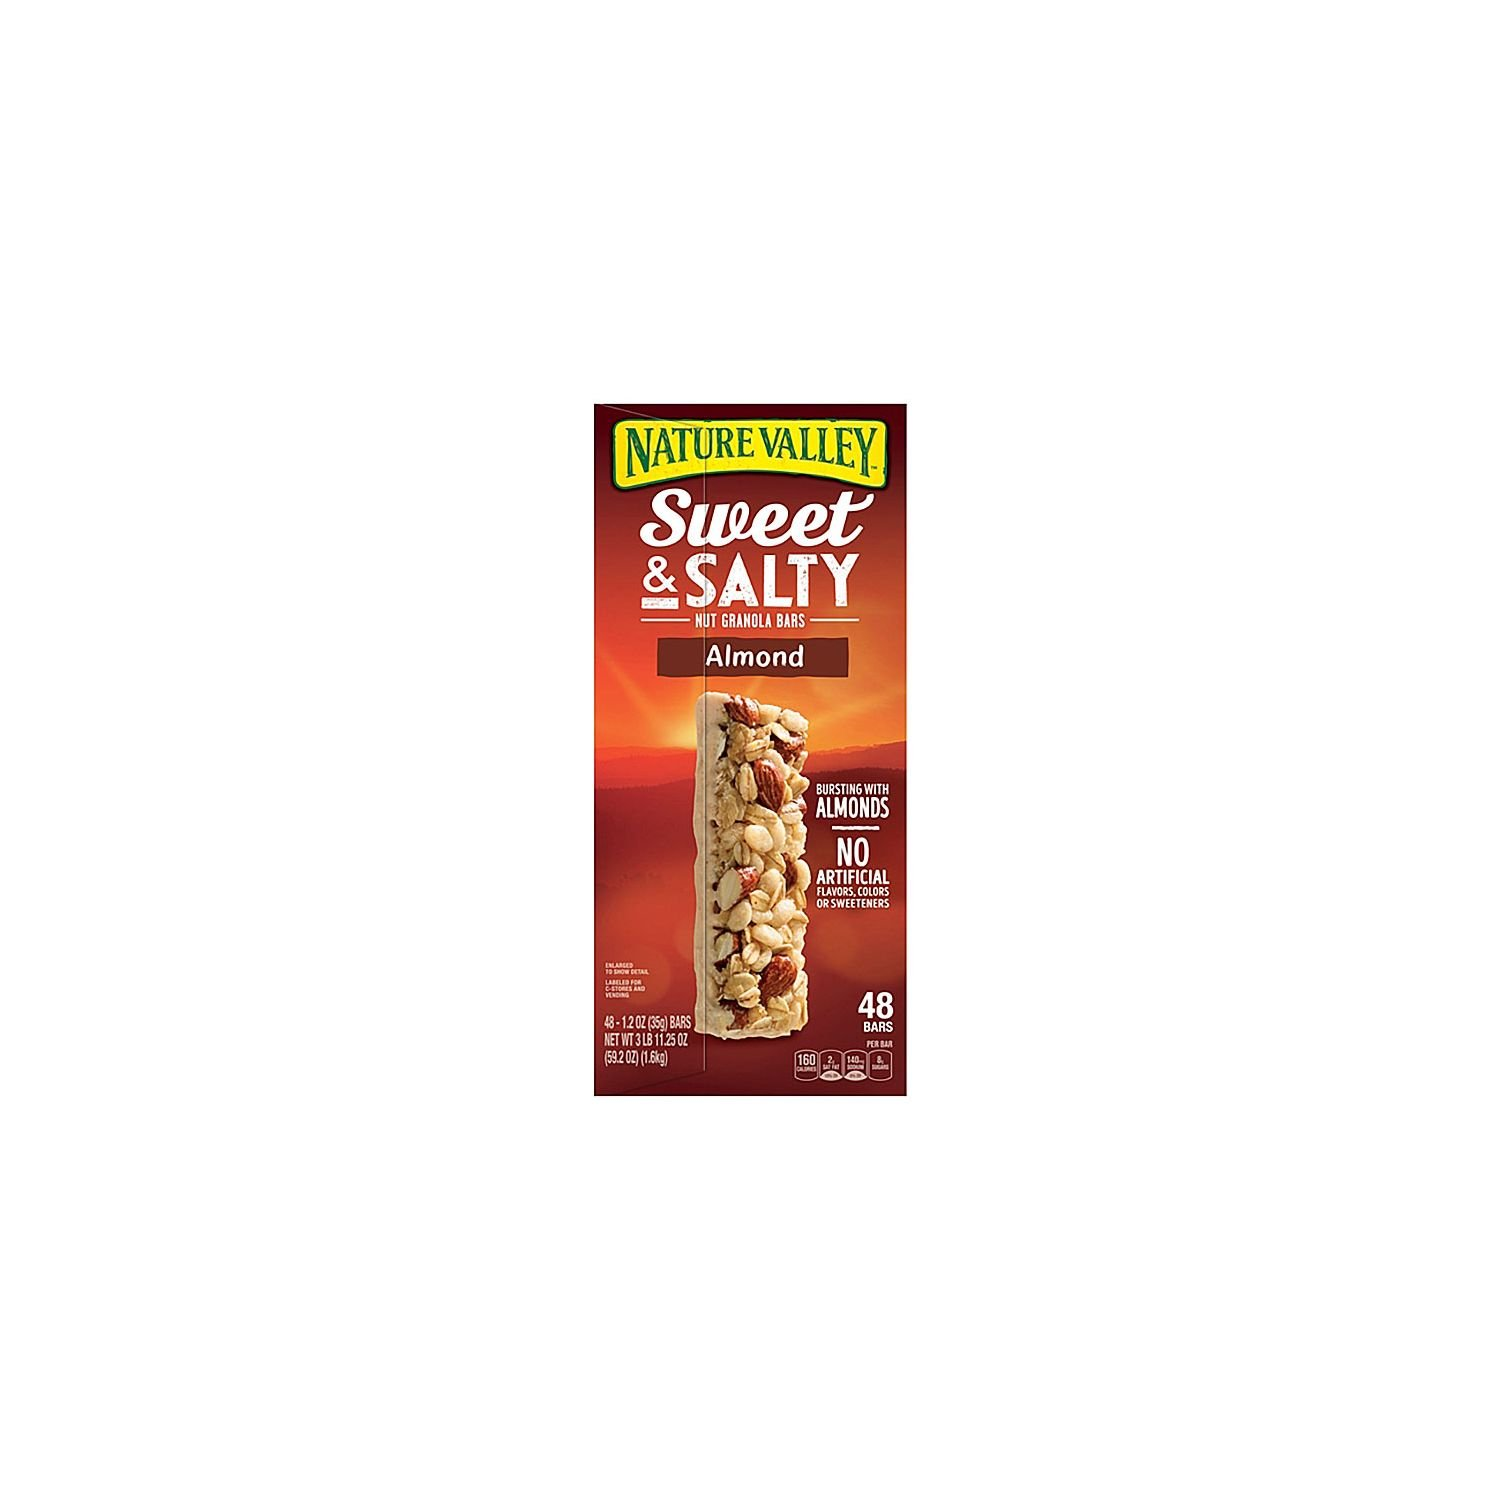 Nature Valley Sweet & Salty Almond Bar (1.2 oz. bars, 48 ct.) (pack of 2)